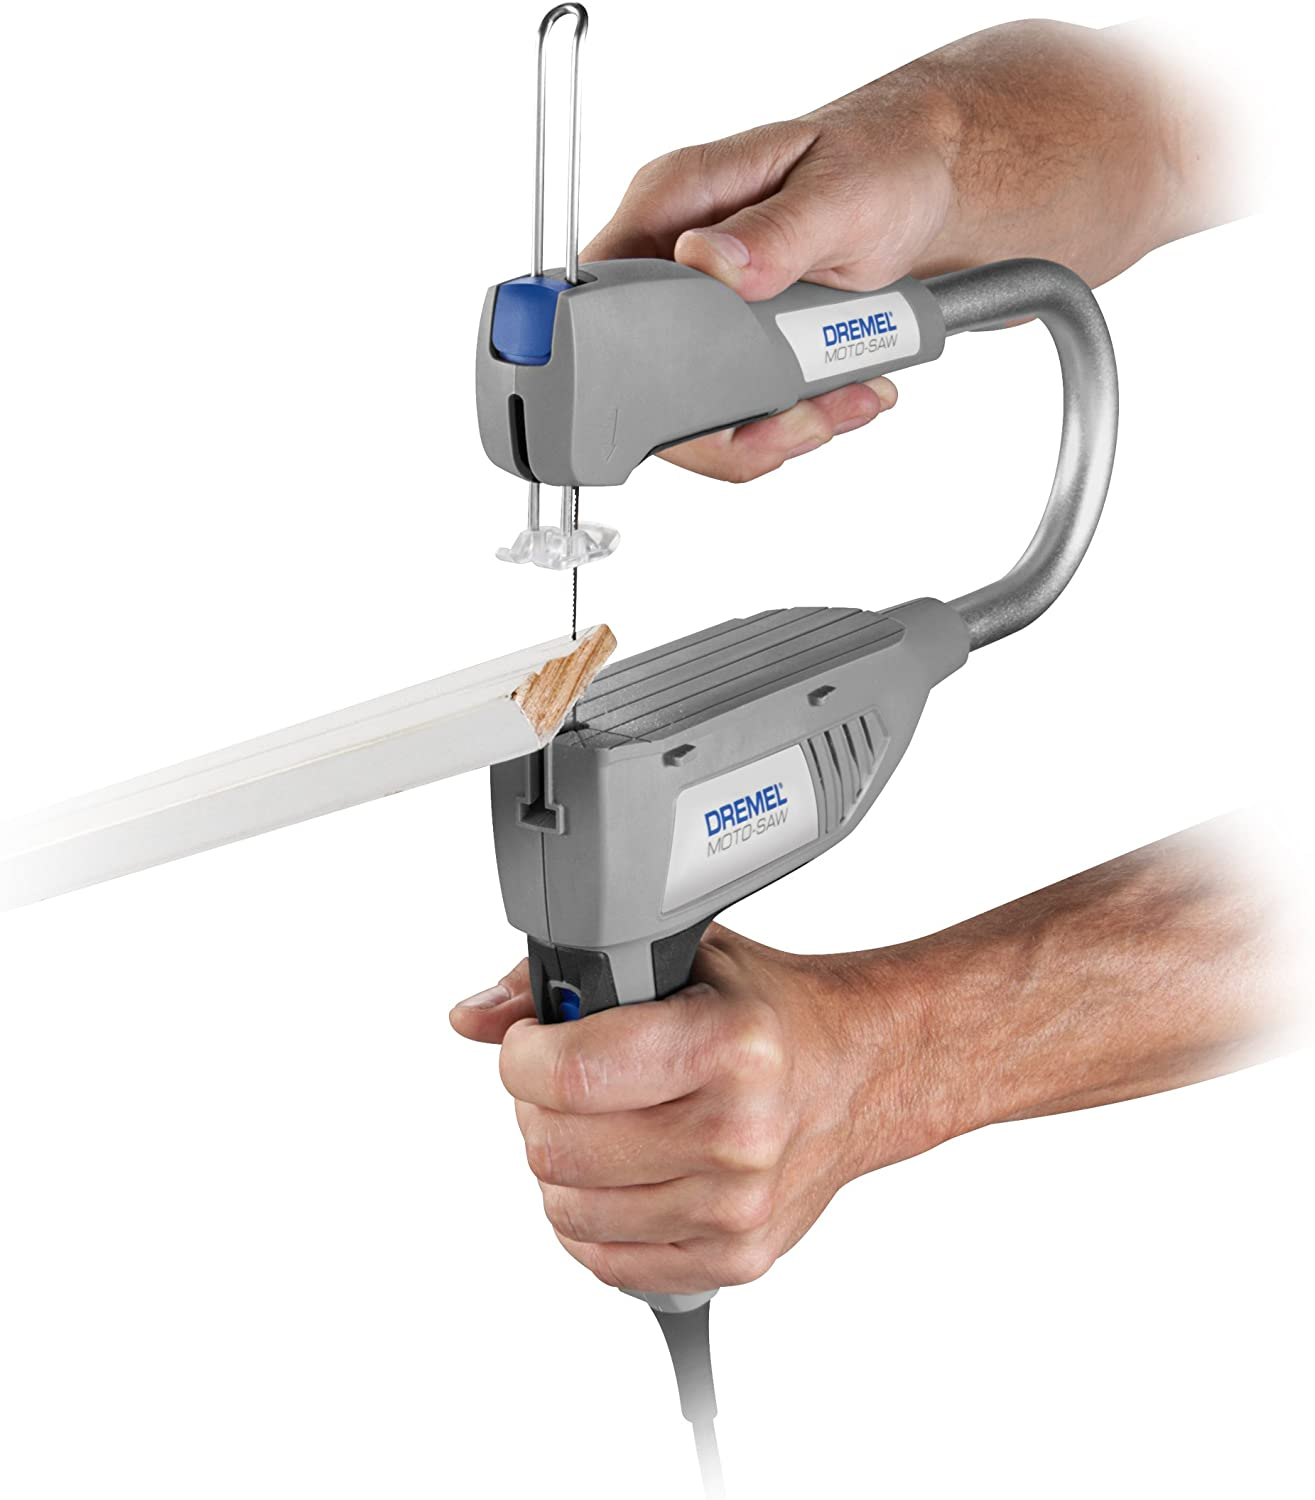 Dremel 120-Volt Corded Compact Portable Moto-Saw Scroll Saw MS20-01